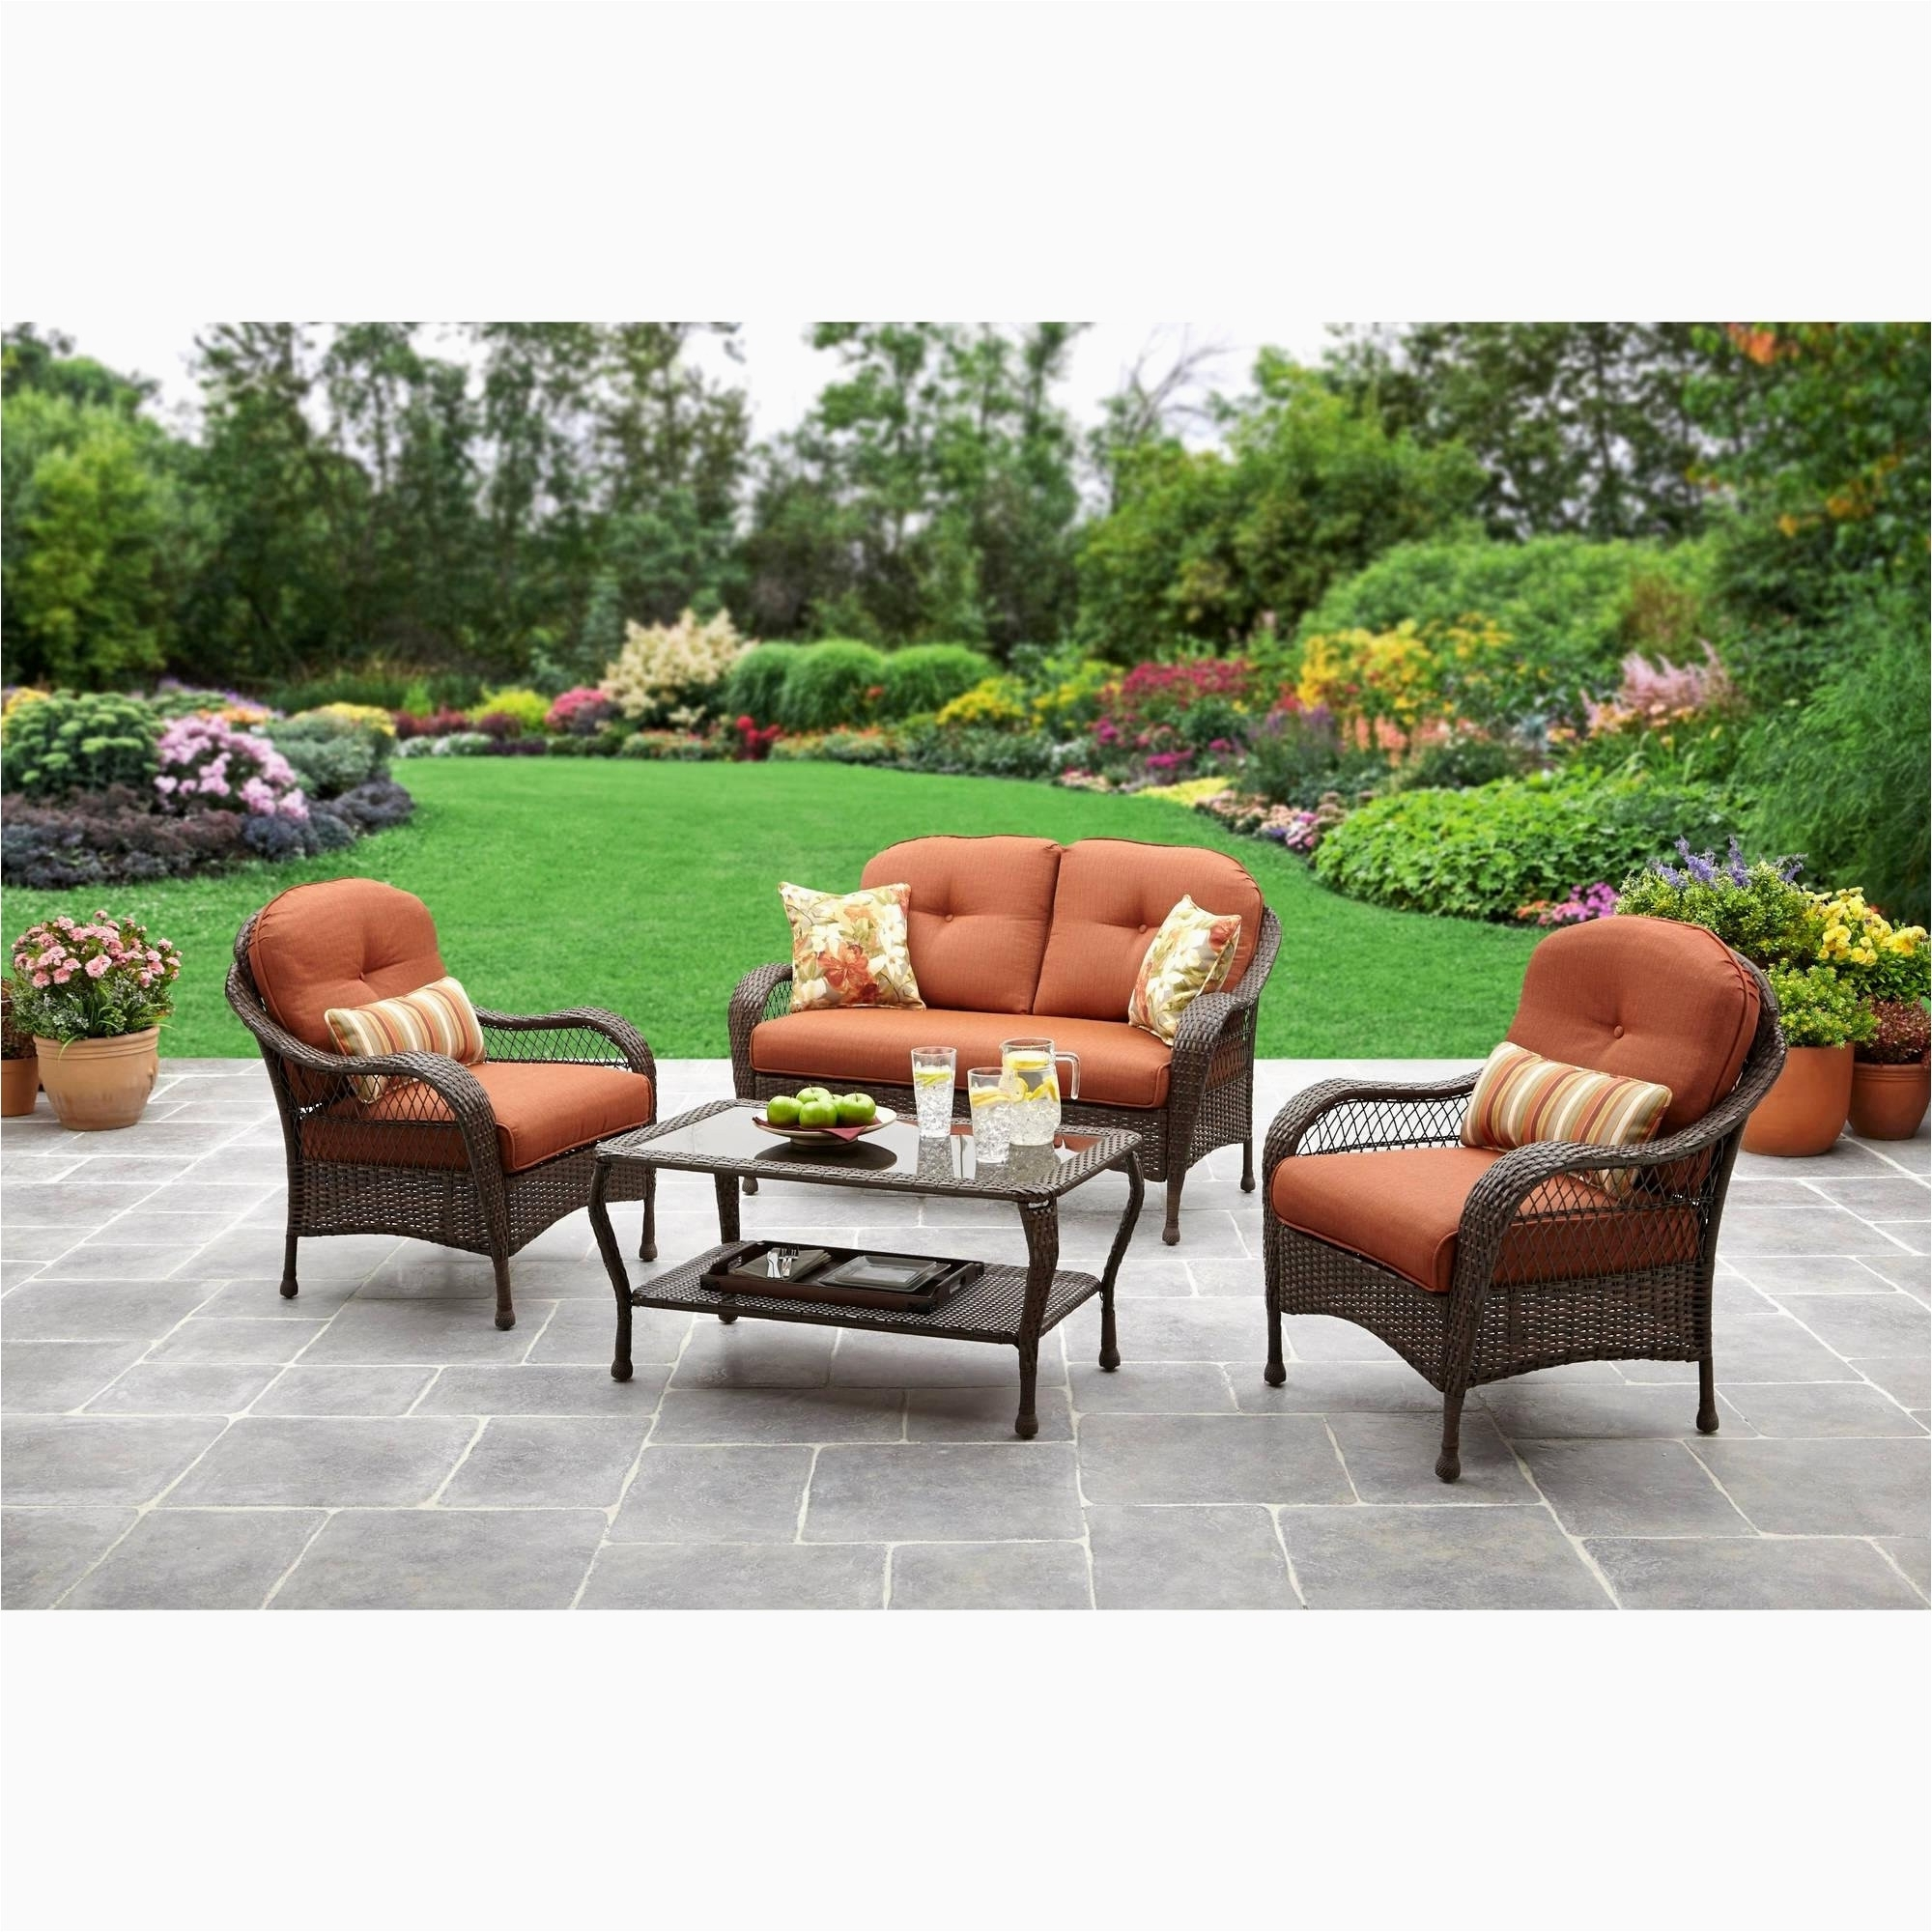 Trendy Lowes Patio Furniture Conversation Sets Within Lowes Patio Stones Tags : Patio Furniture Conversation Set Outdoor (View 13 of 15)